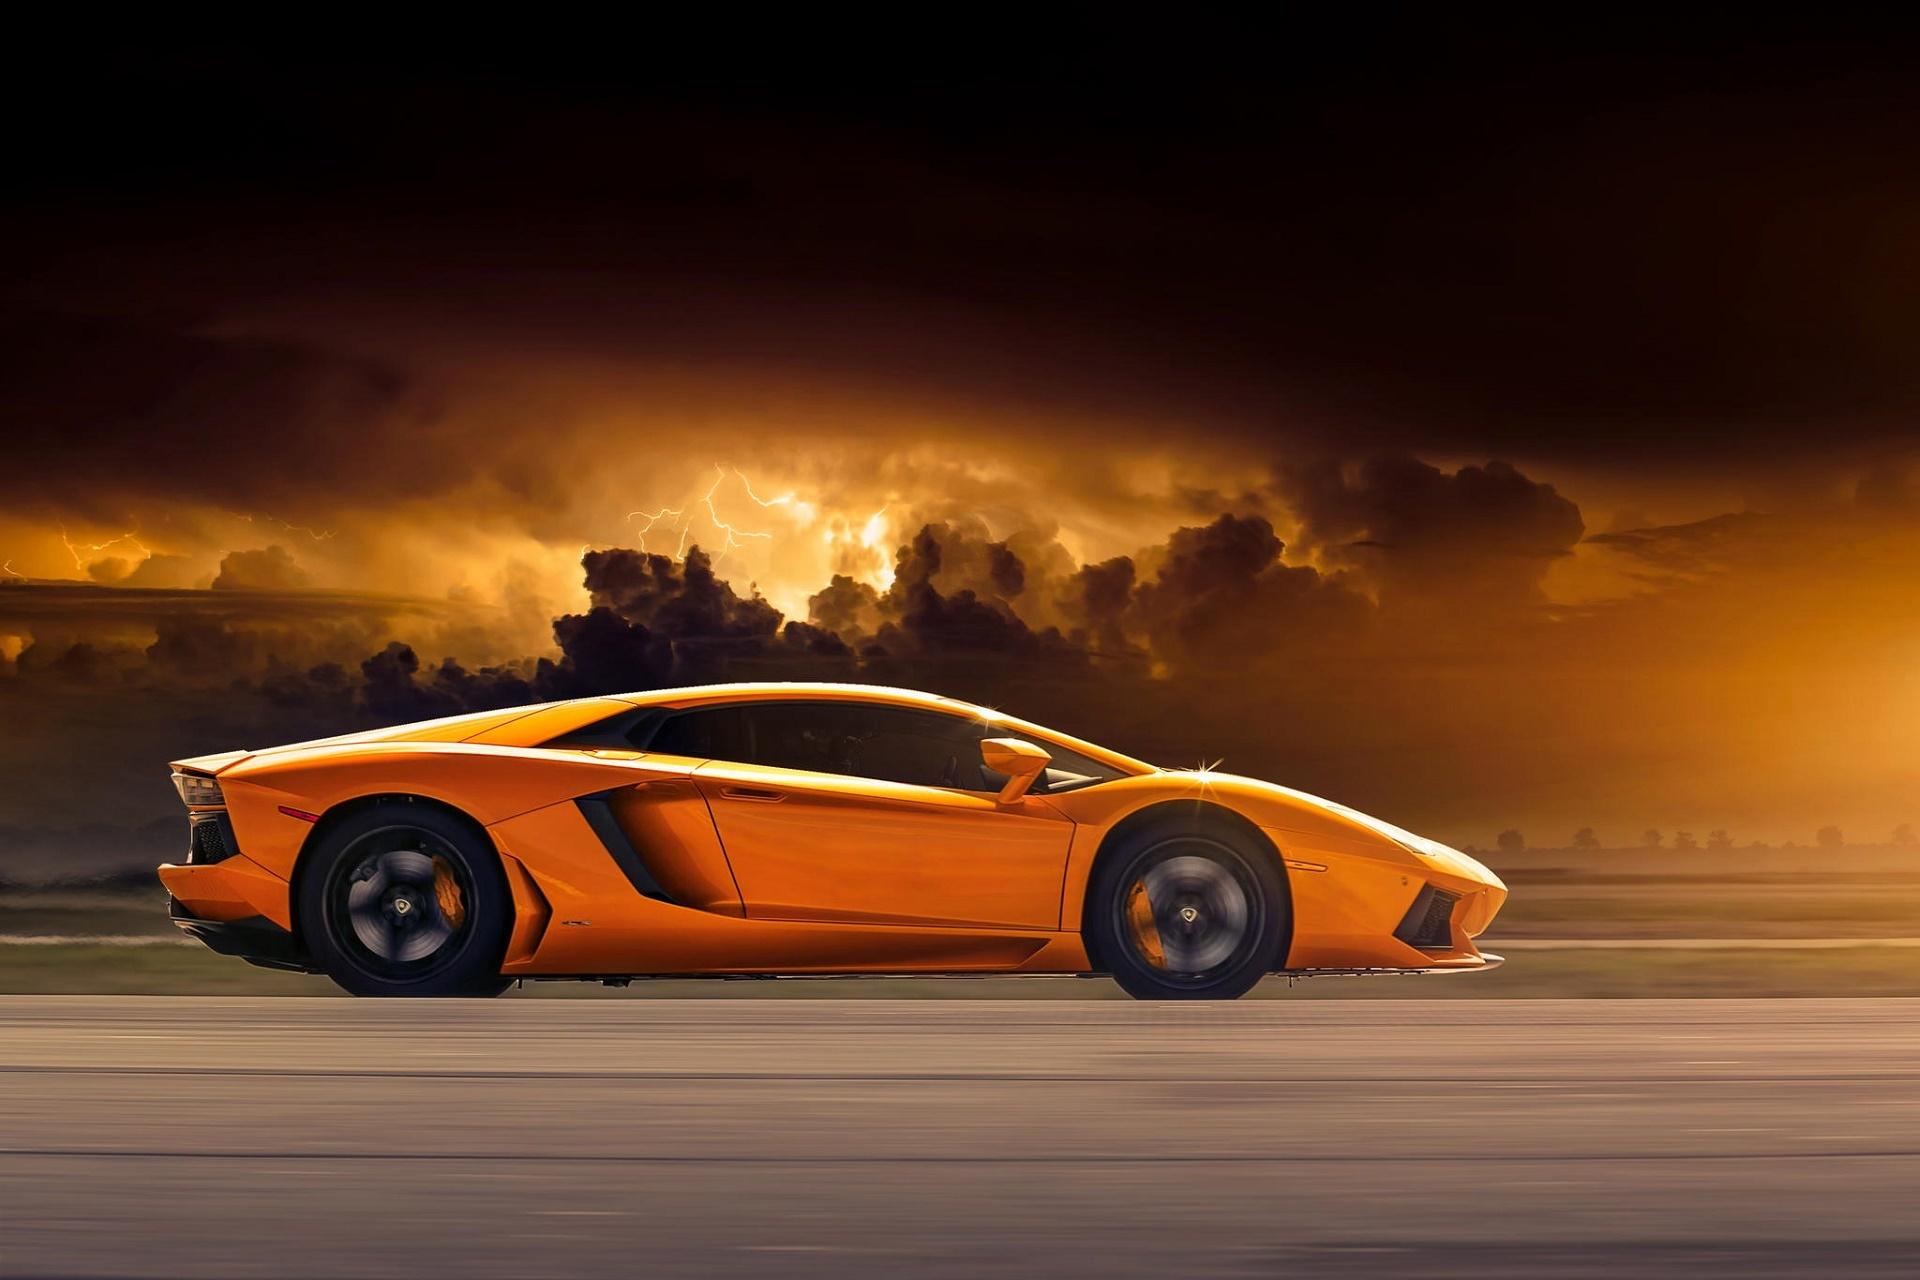 Hd Car Wallpapers For Mobile 28 Wallpapers: Lamborghini Aventador High Resolution Pictures